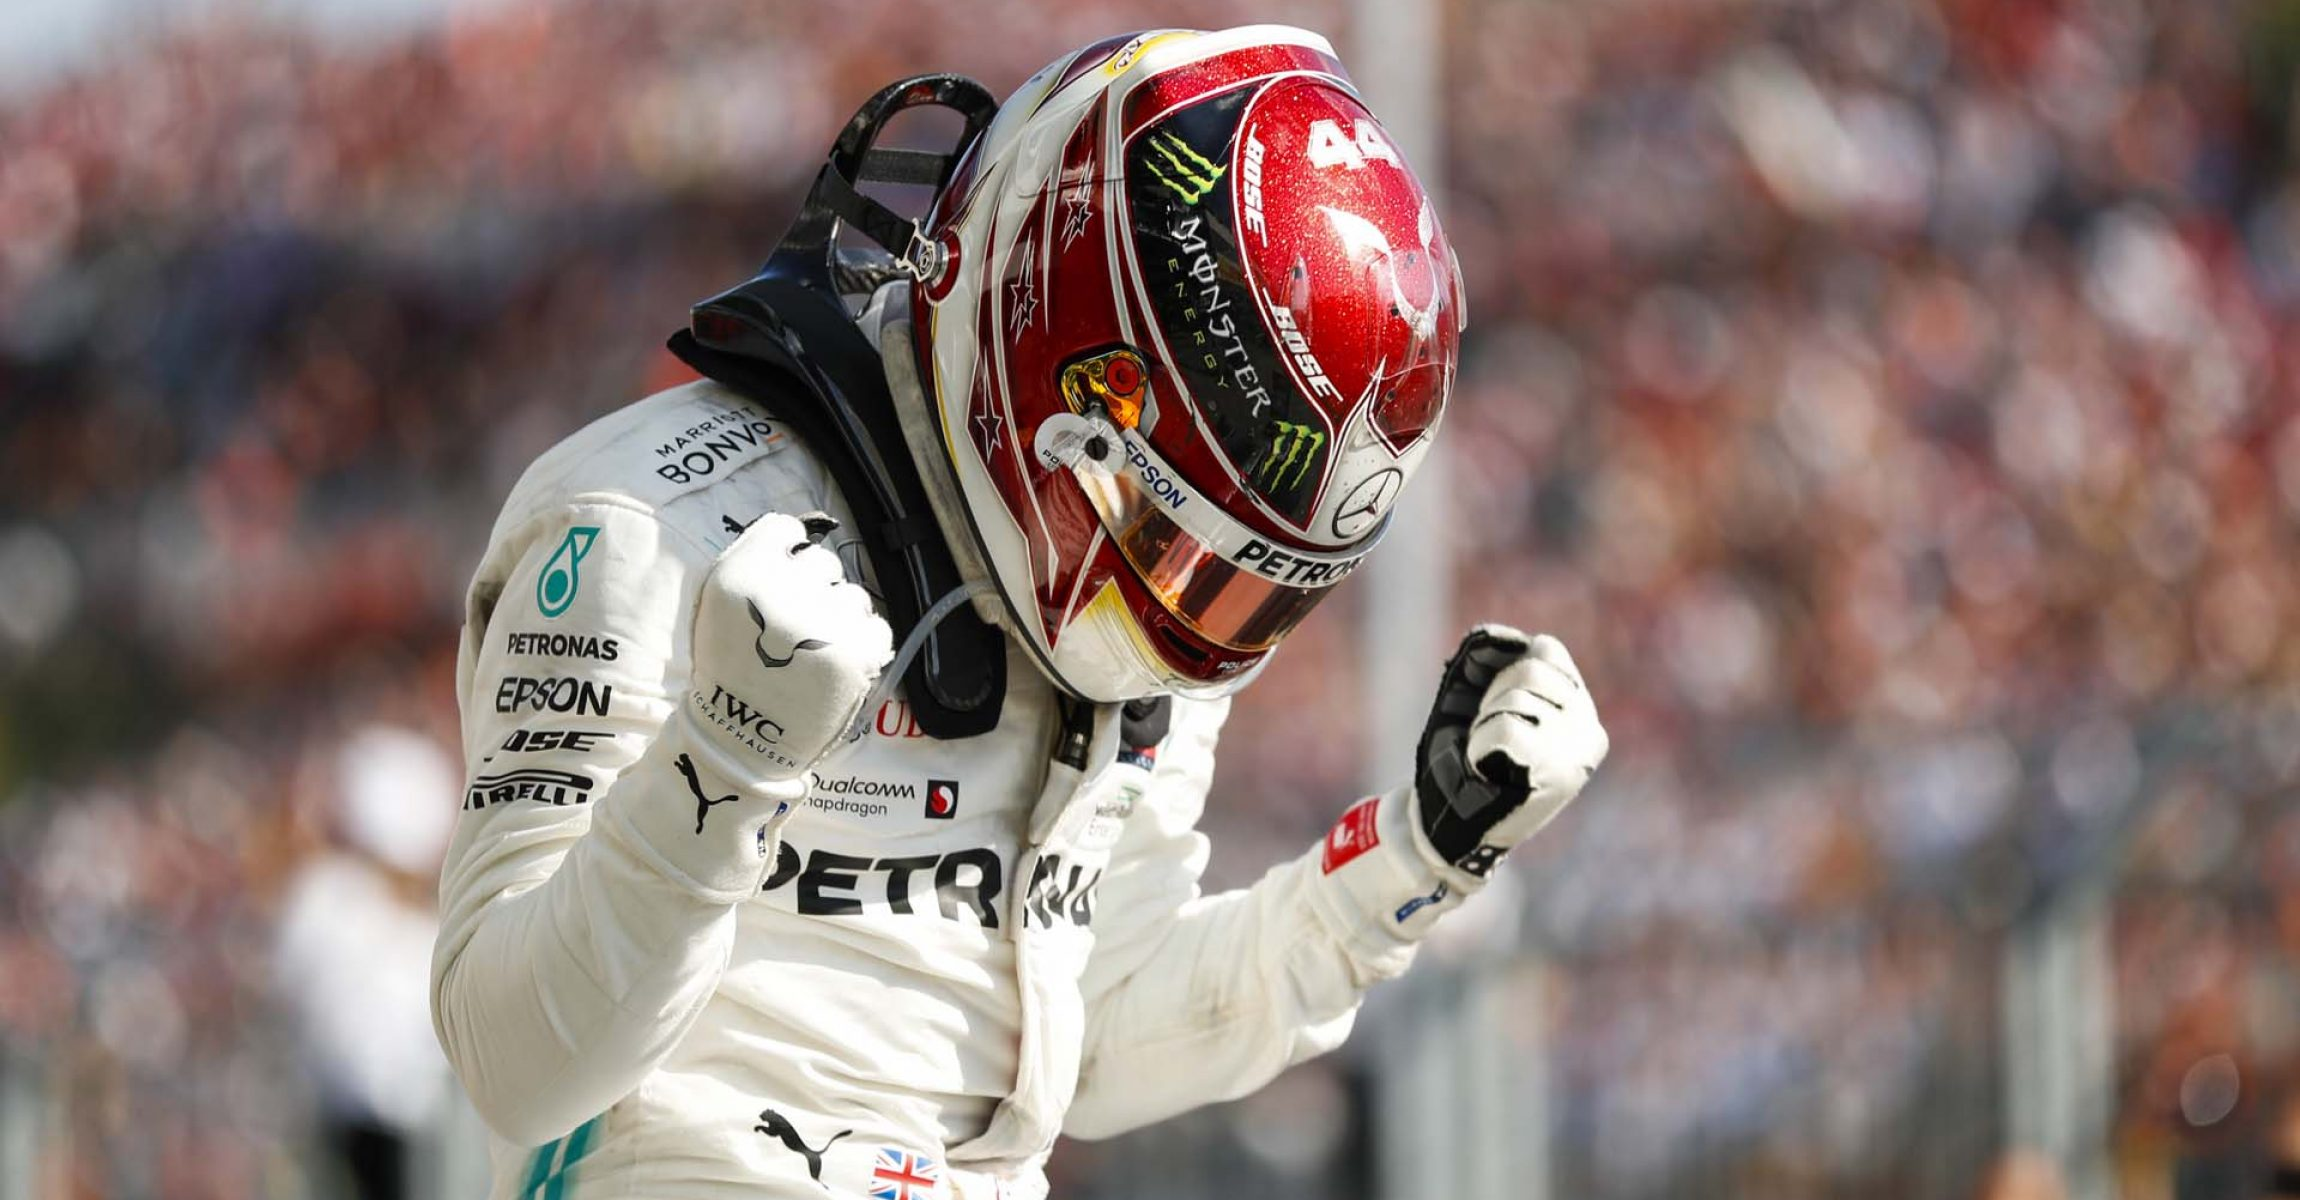 2019 Hungarian Grand Prix, Sunday - LAT Images Lewis Hamilton Mercedes